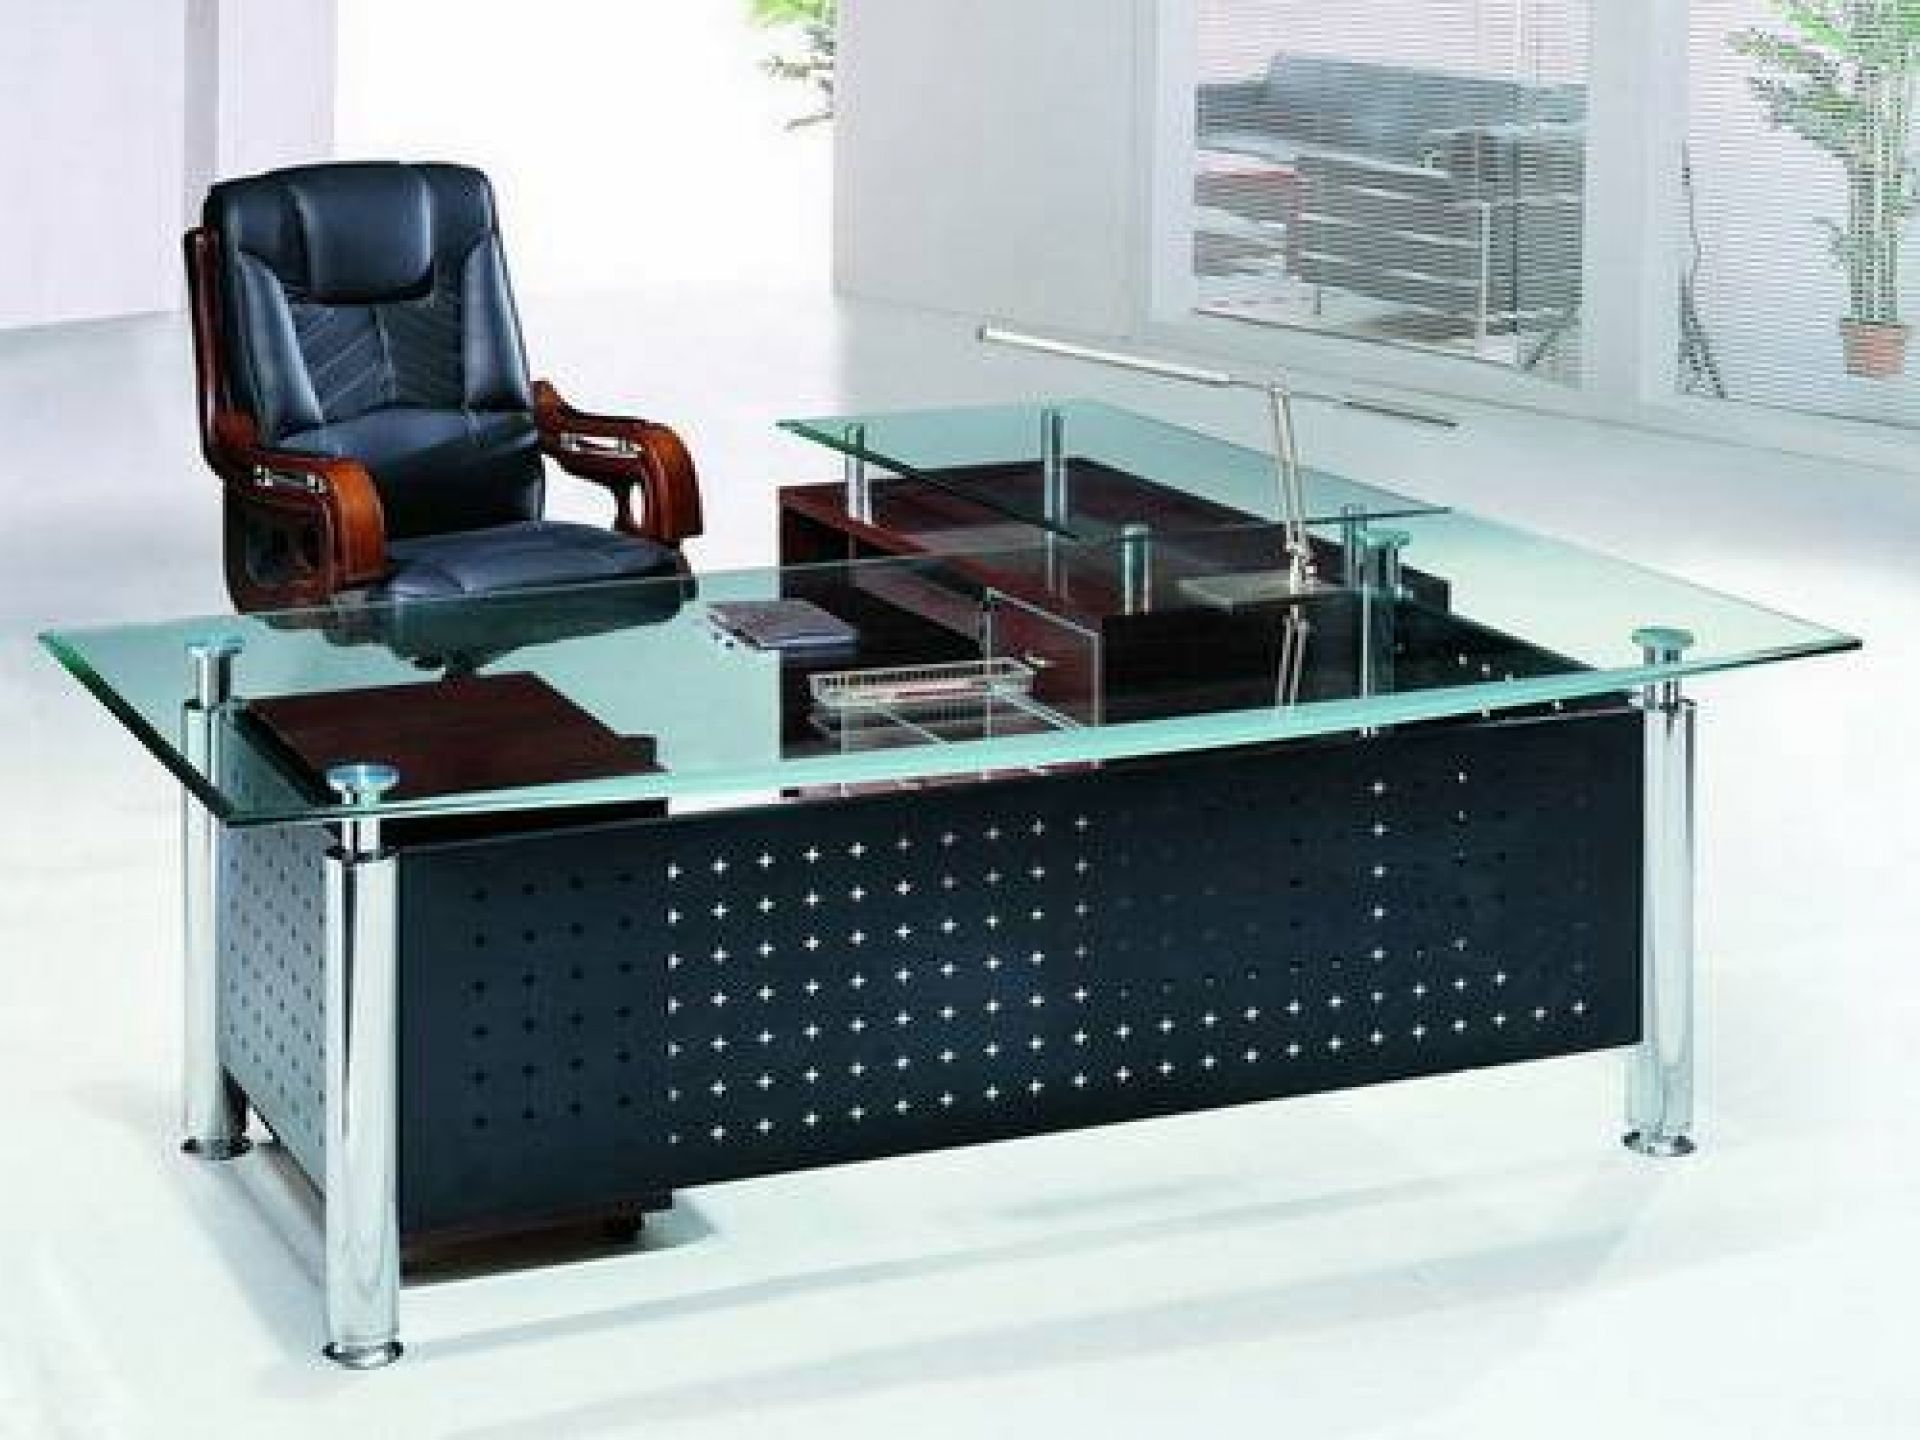 Stylish Black Leather Office Chair Added Contemporary Glass Top Desk ...